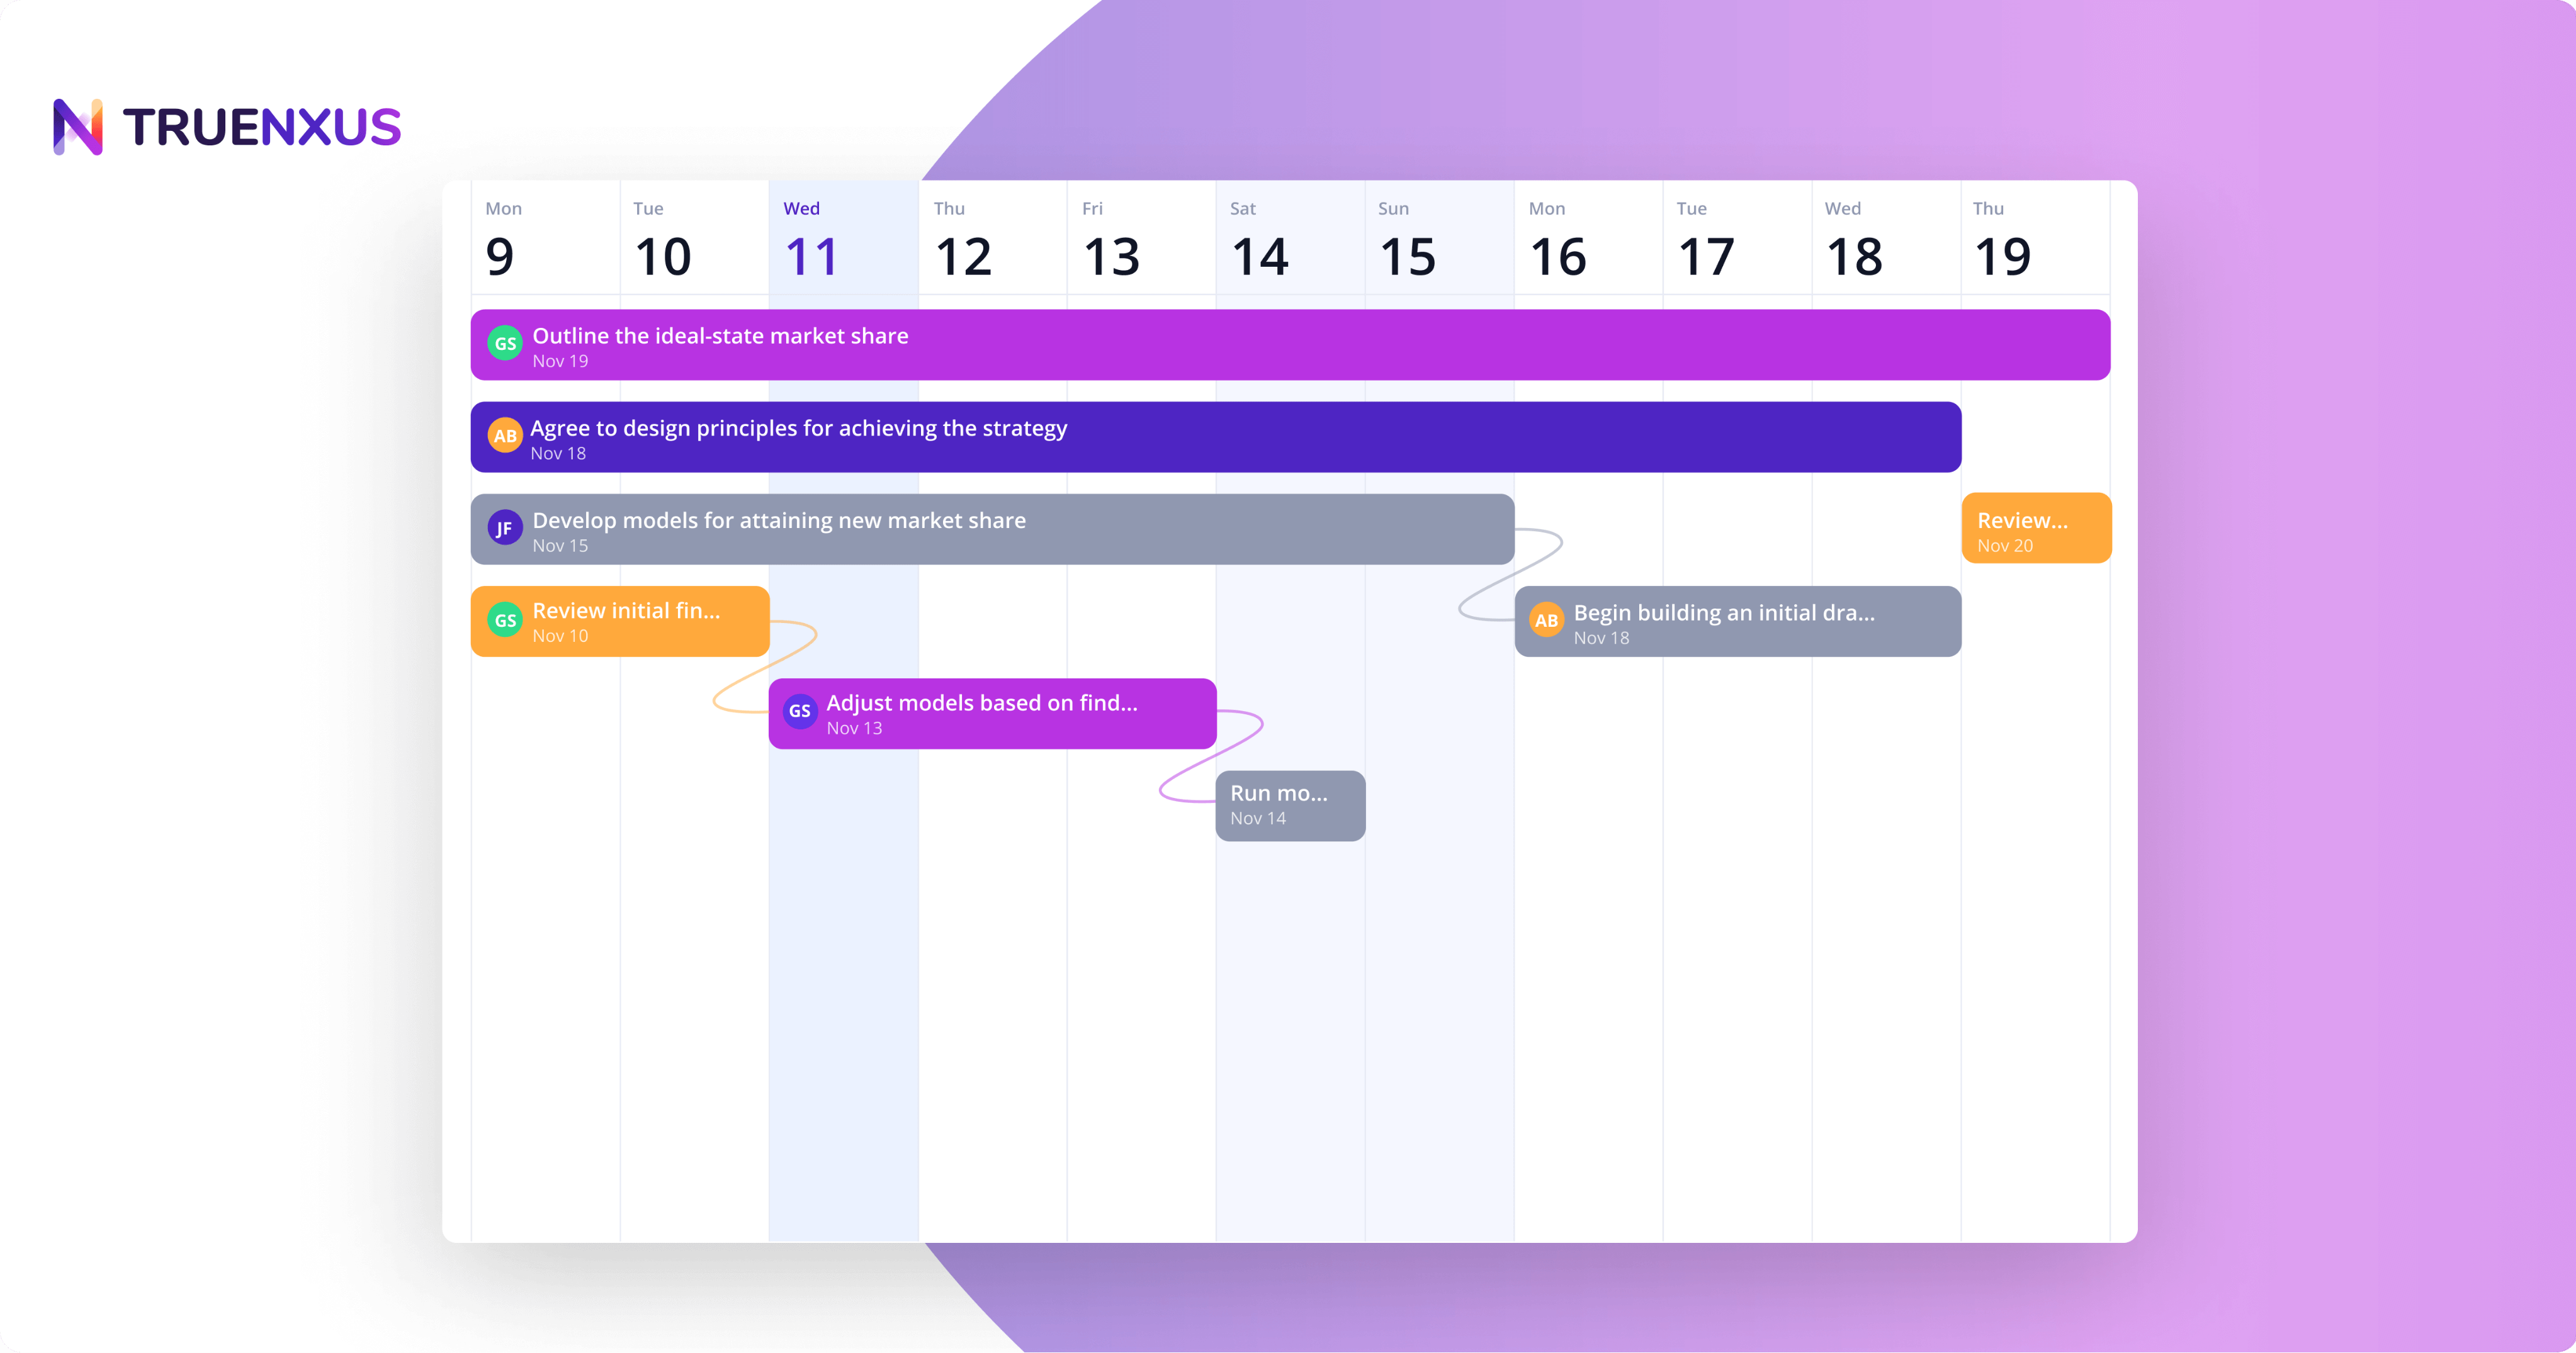 TrueNxus's timeline, a better alternative to traditional Gantt charts